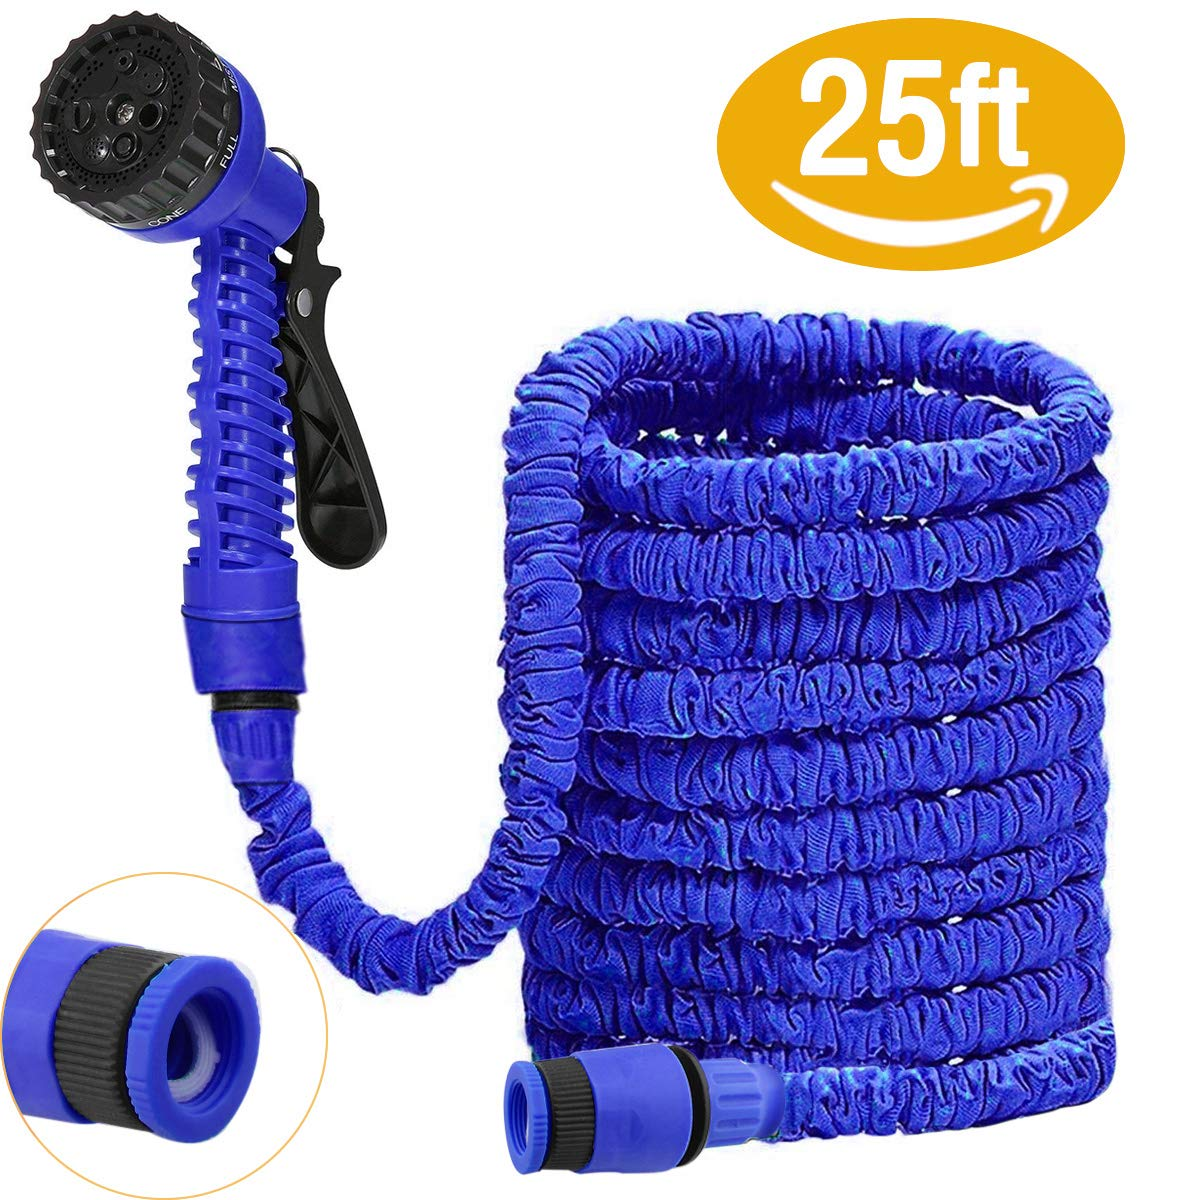 DAMIGRAM Expandable Garden Water Hose Pipe, 3 Times Expanding 25FT Flexible Lightweight Hose Pipe With 8 Function Spray Gun For Washing Car, Watering Flowers (Blue) Shenzhen Antop Technology. Ltd